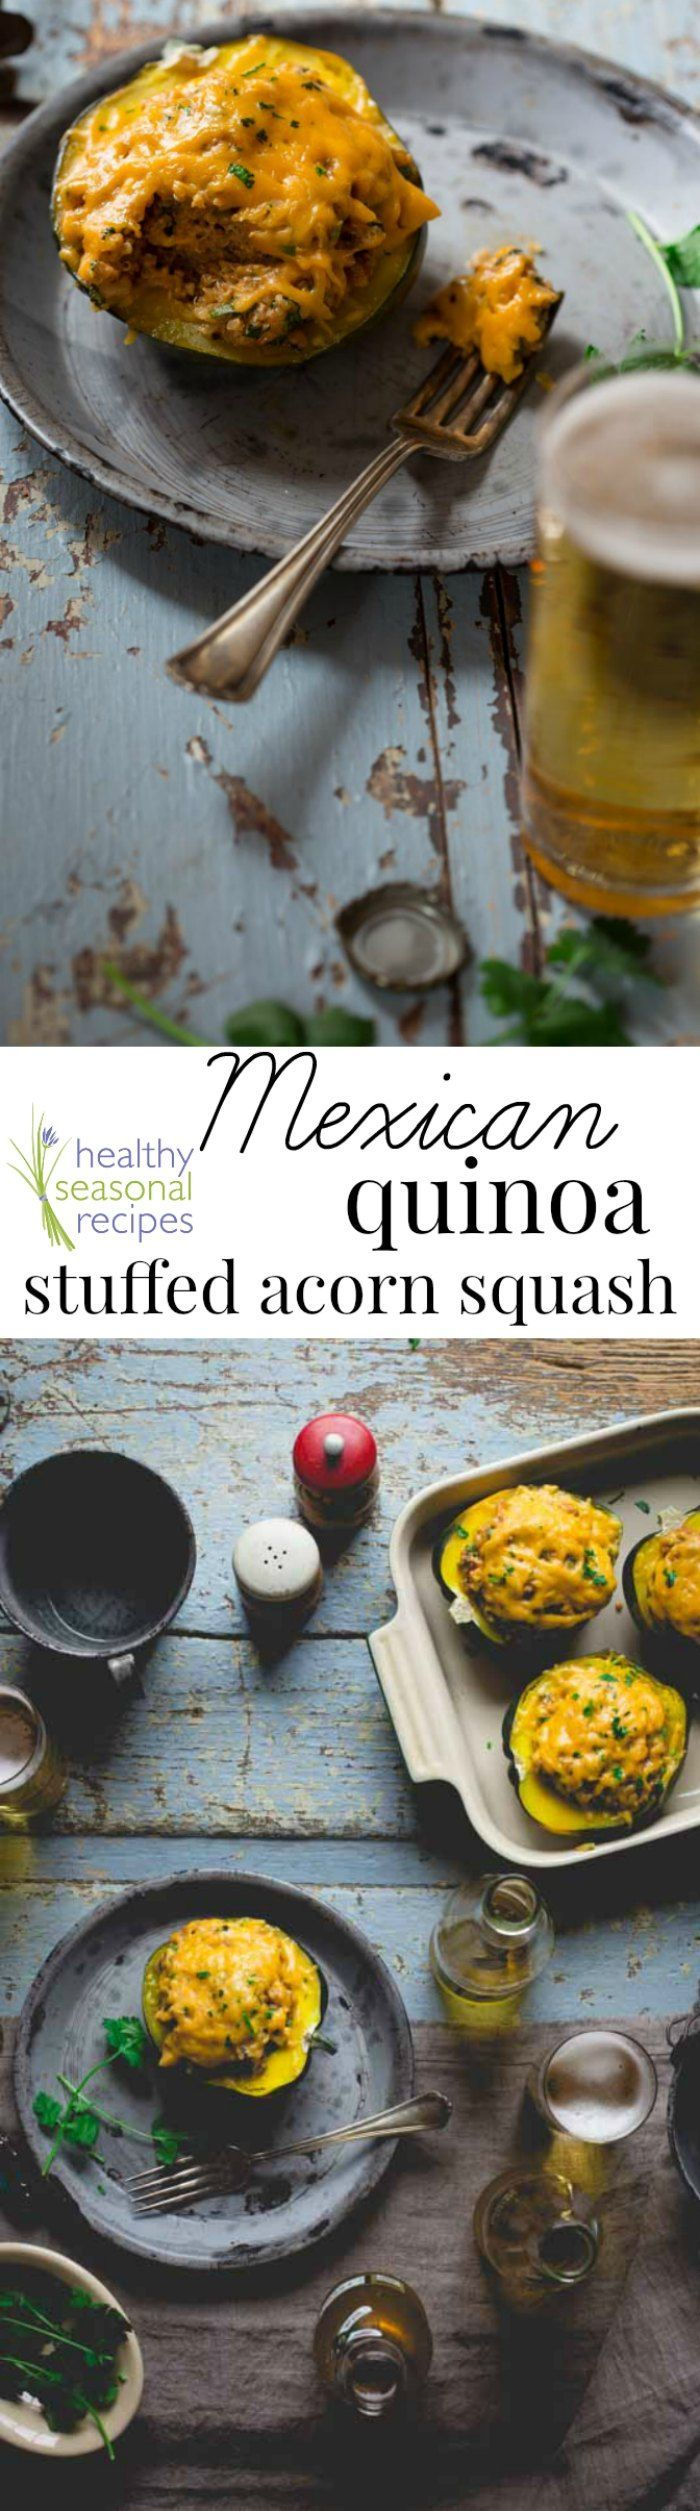 Blog post at Healthy Seasonal Recipes : These Cheesy Mexican Quinoa Stuffed Acorn Squash take 30 minutes to make, they are gluten-free and vegetarian.    A couple weeks ago, I [..]